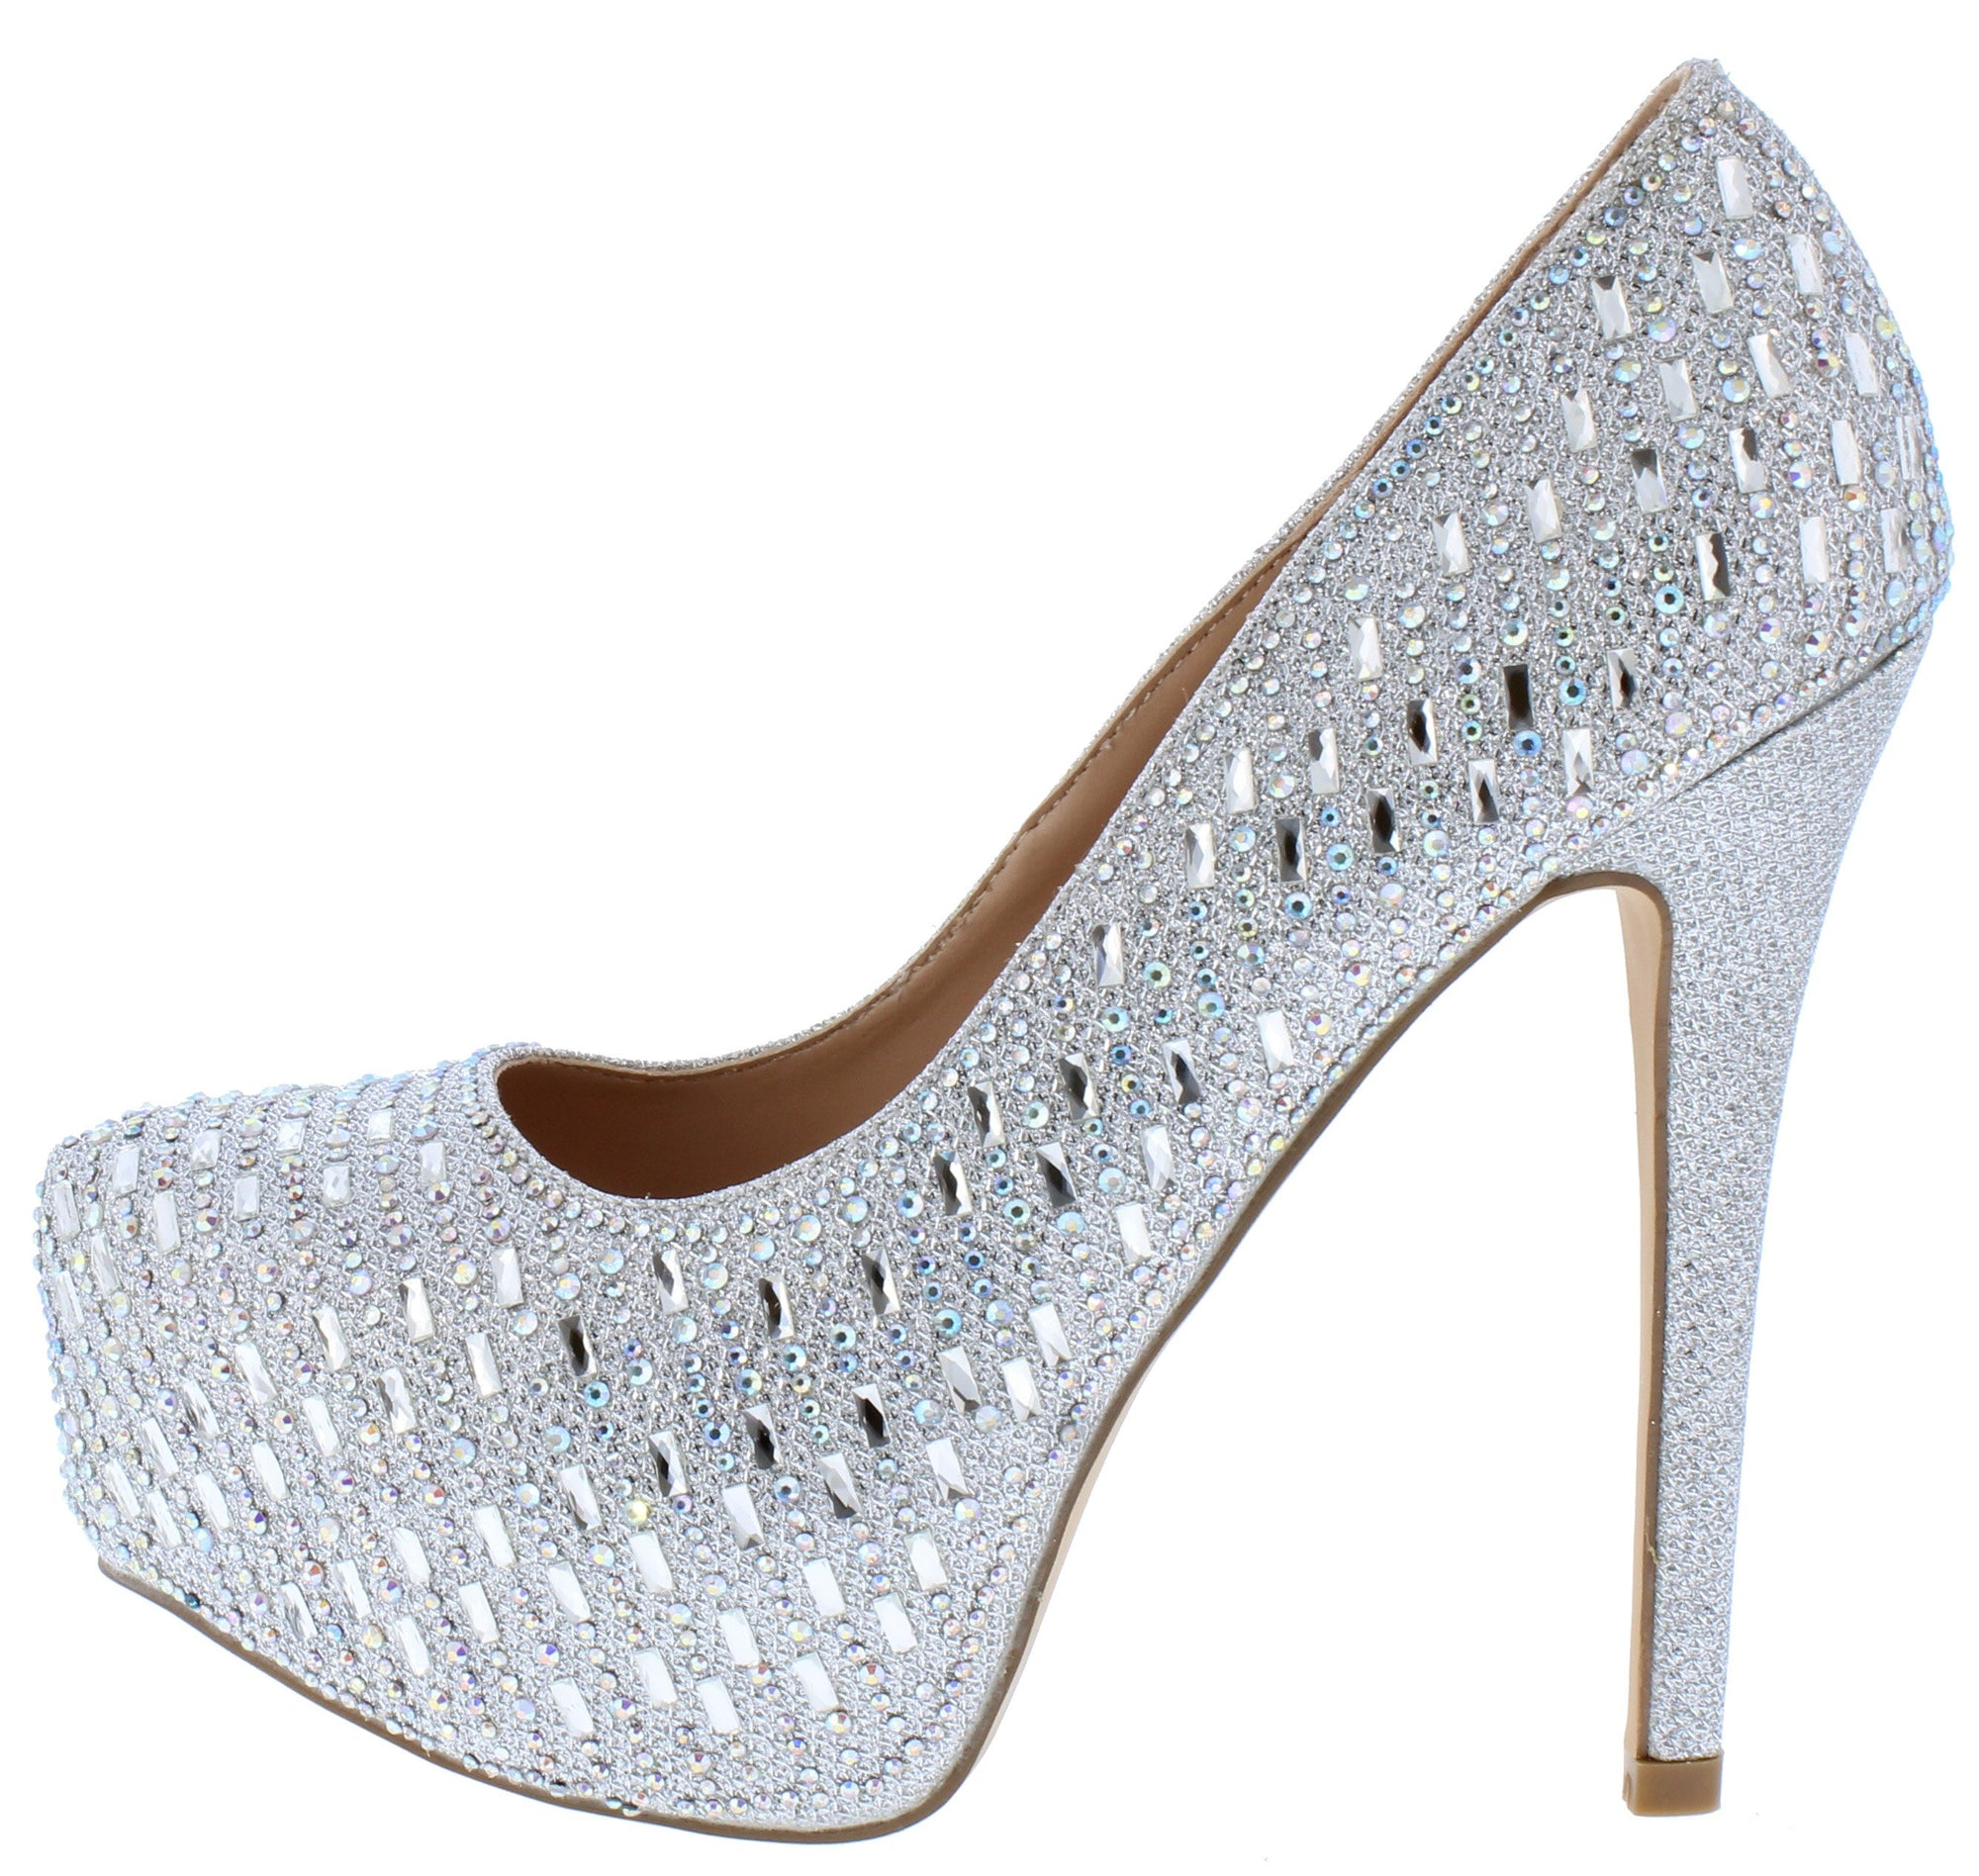 45b7ae4a68c4 Lacee1 Silver Sparkle Embellished Platform Stiletto Heel - Wholesale  Fashion Shoes